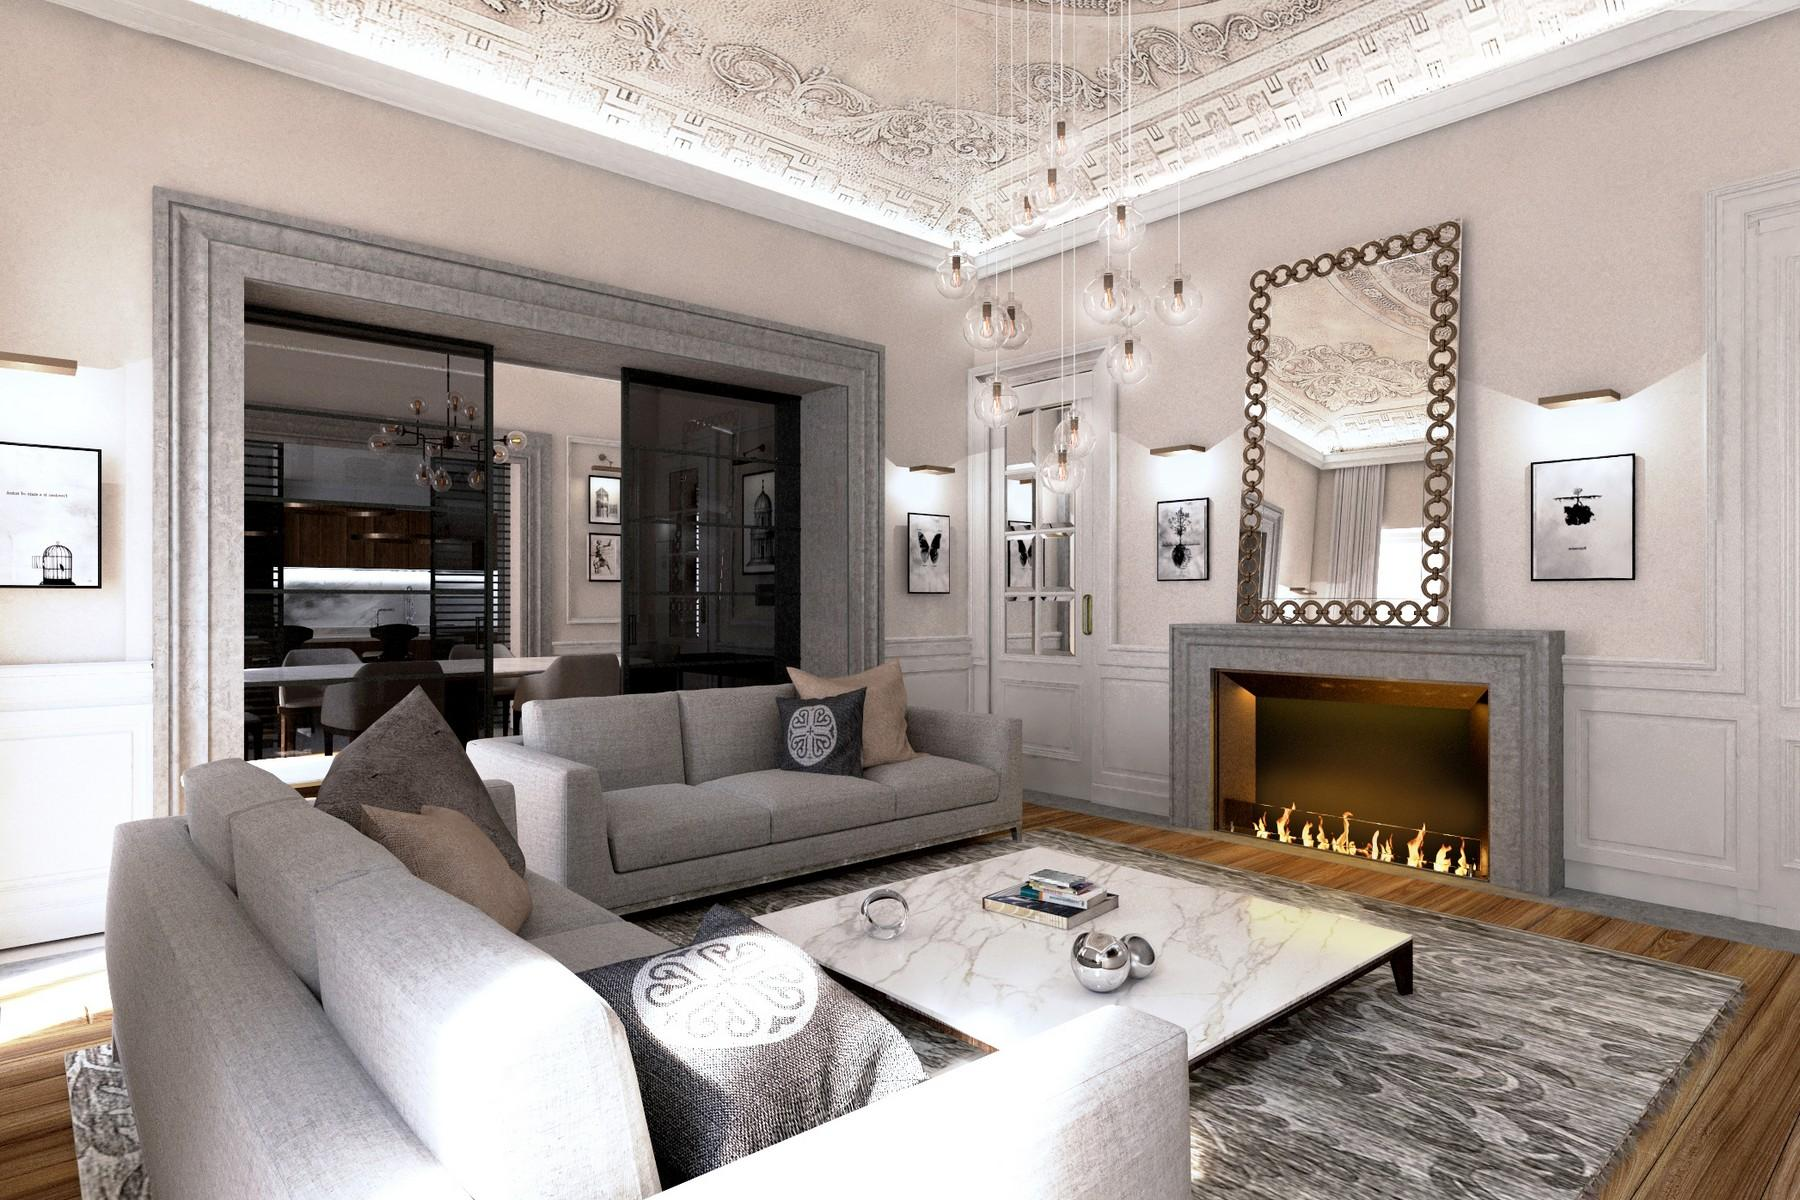 Ognissanti Palace: Extraordinary refined apartment in the city center - 1